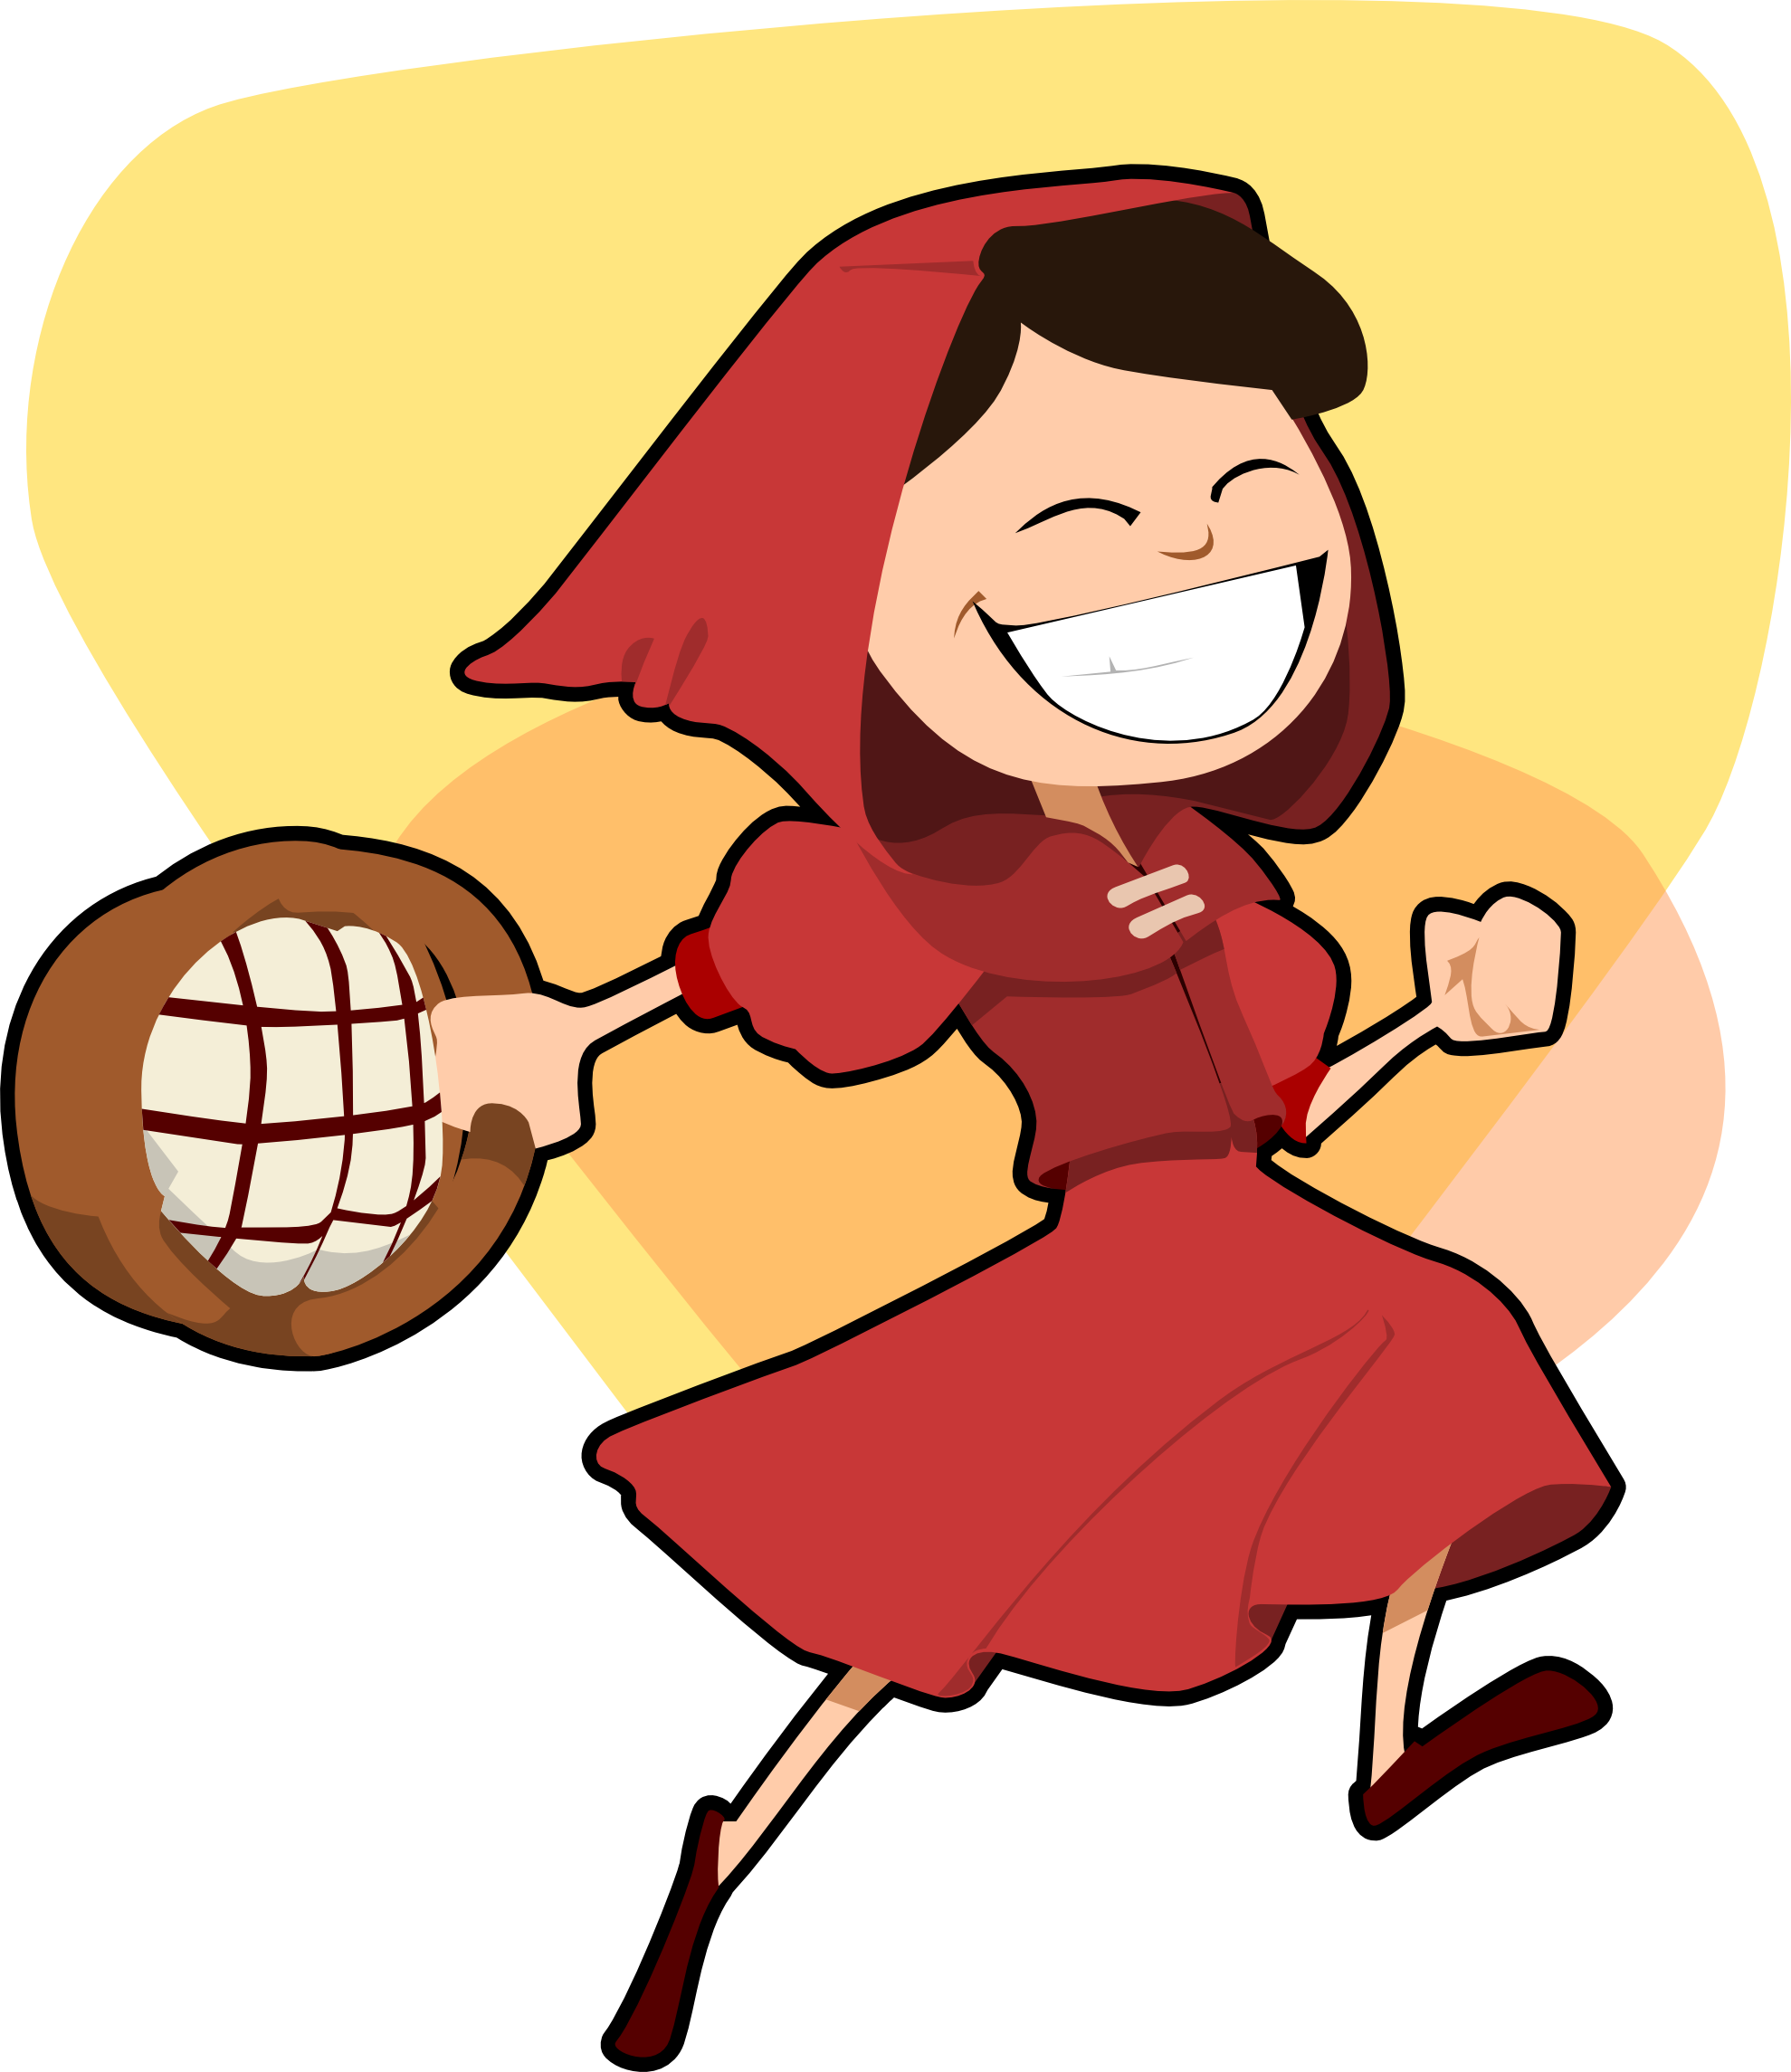 little_red_riding_hood_art-1979px.png